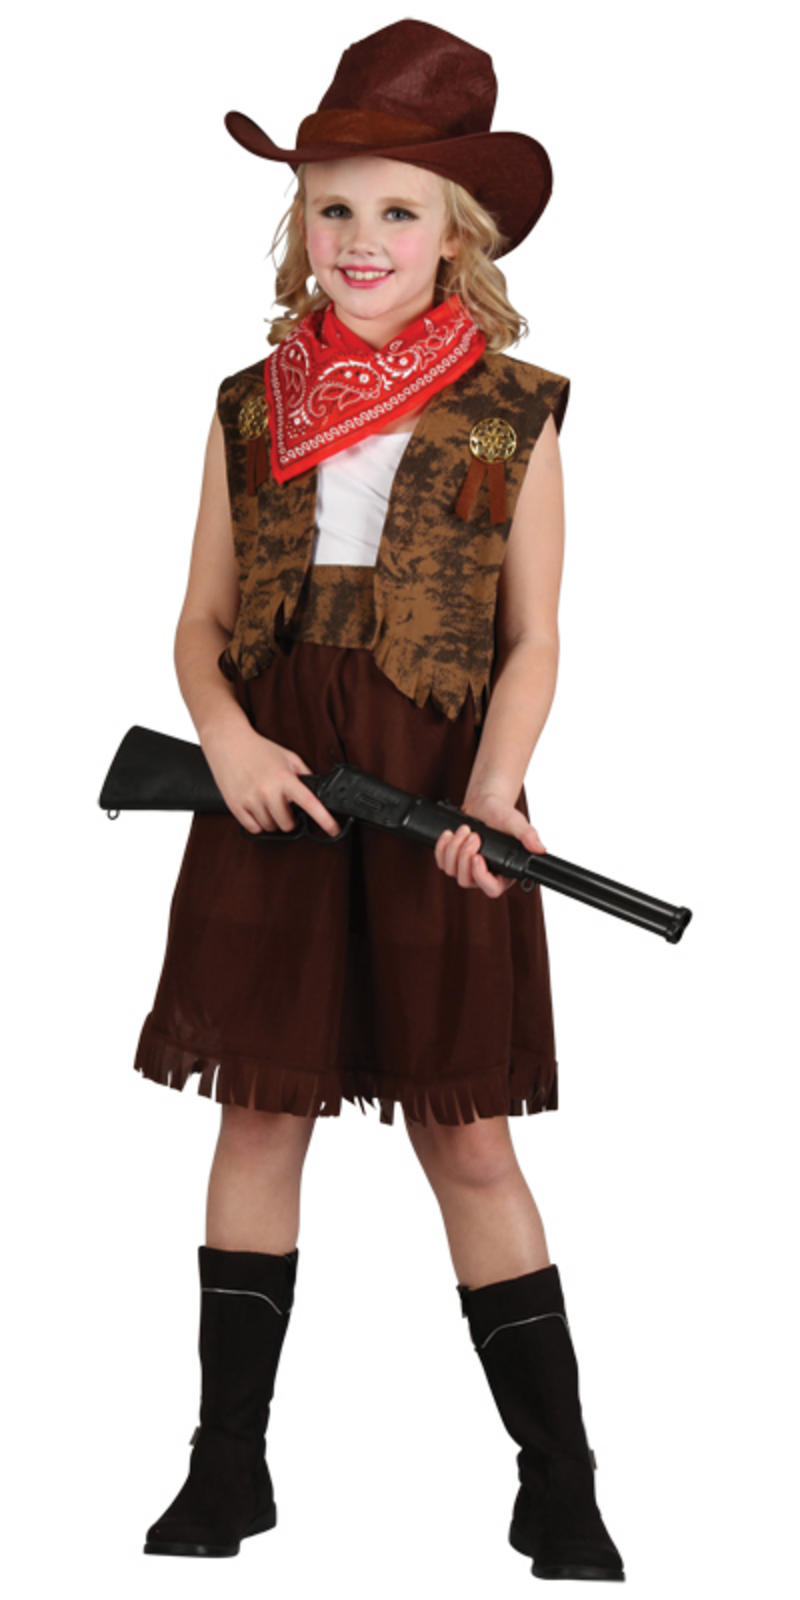 Cowgirl Girls Western Fancy Dress Kids Costume   Cowboy Hat Outfit ...